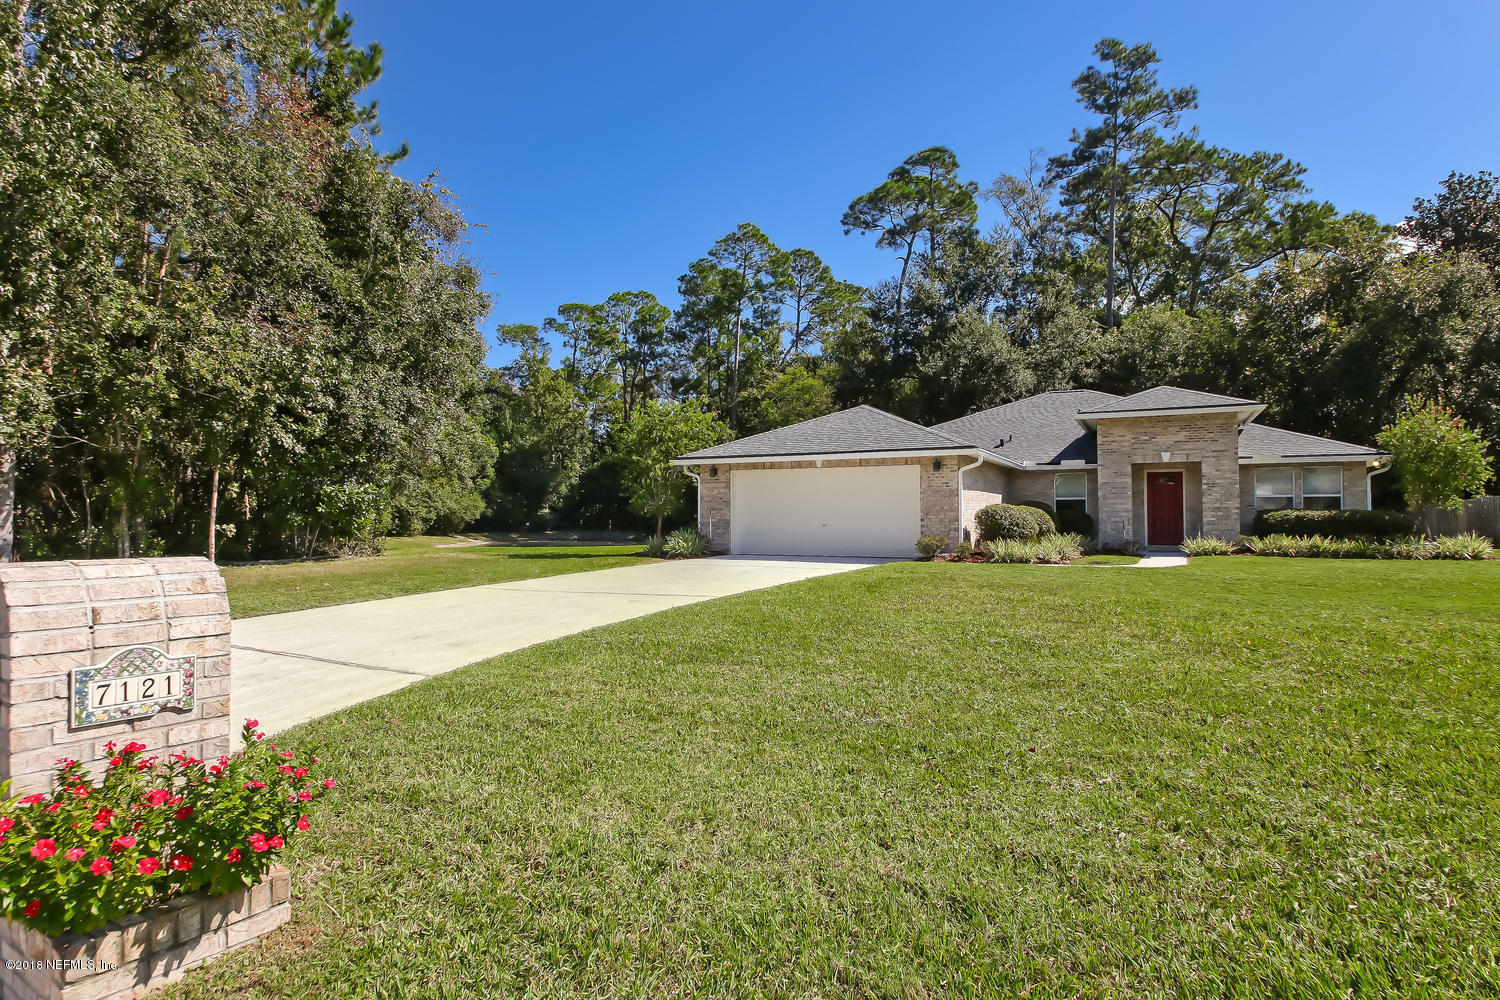 7121 TARPON, FLEMING ISLAND, FLORIDA 32003, 3 Bedrooms Bedrooms, ,2 BathroomsBathrooms,Residential - single family,For sale,TARPON,959489